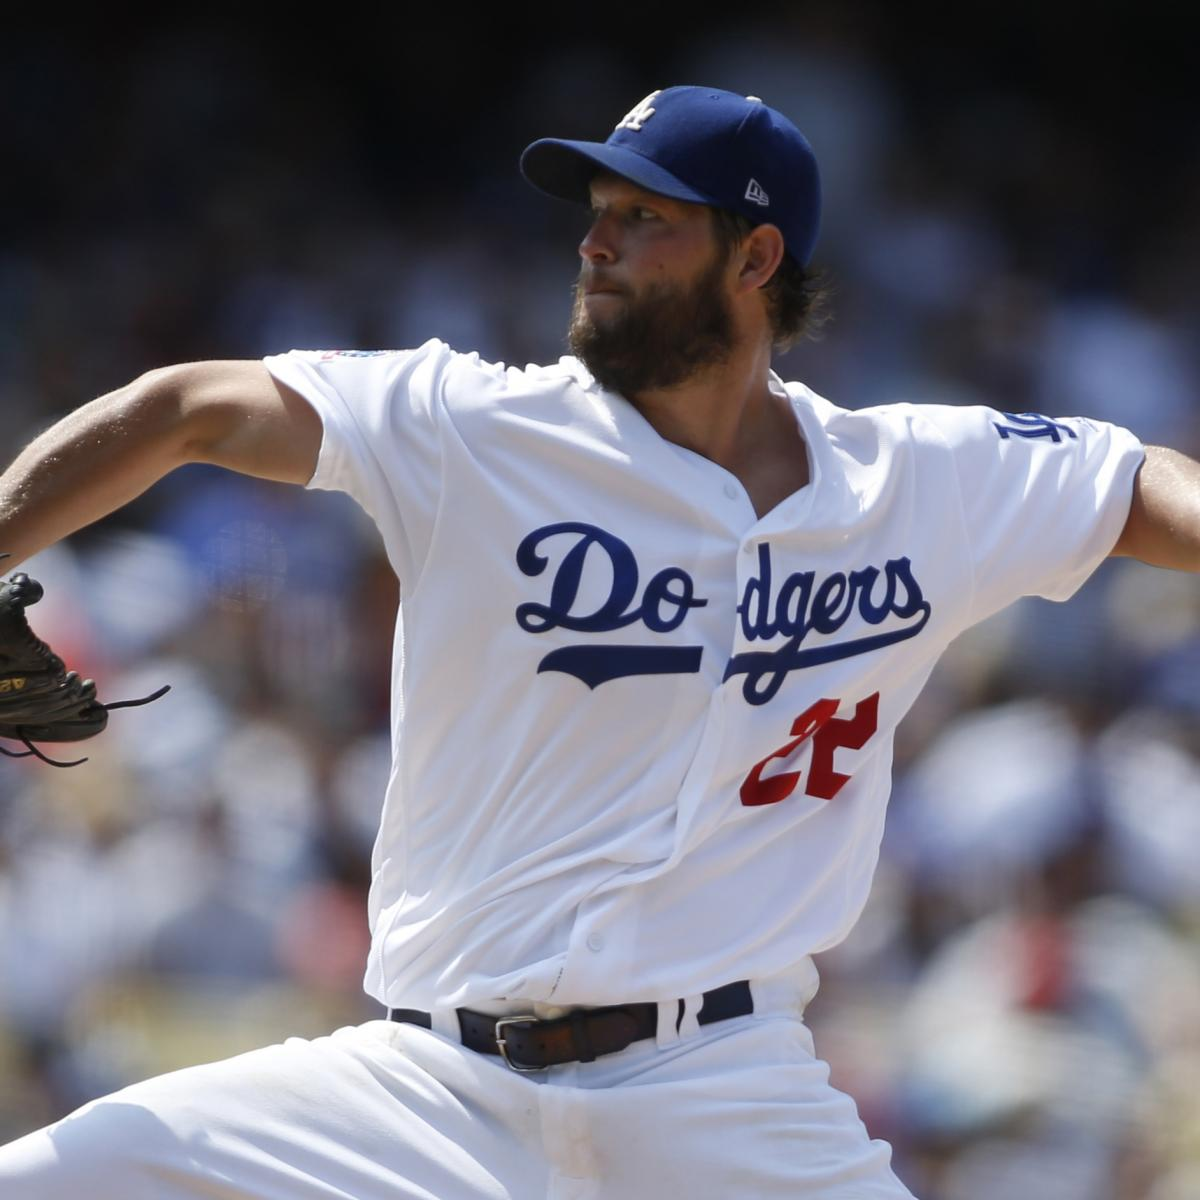 Los Angeles Dodgers vs. Oakland Athletics Odds, Analysis, MLB Betting Pick